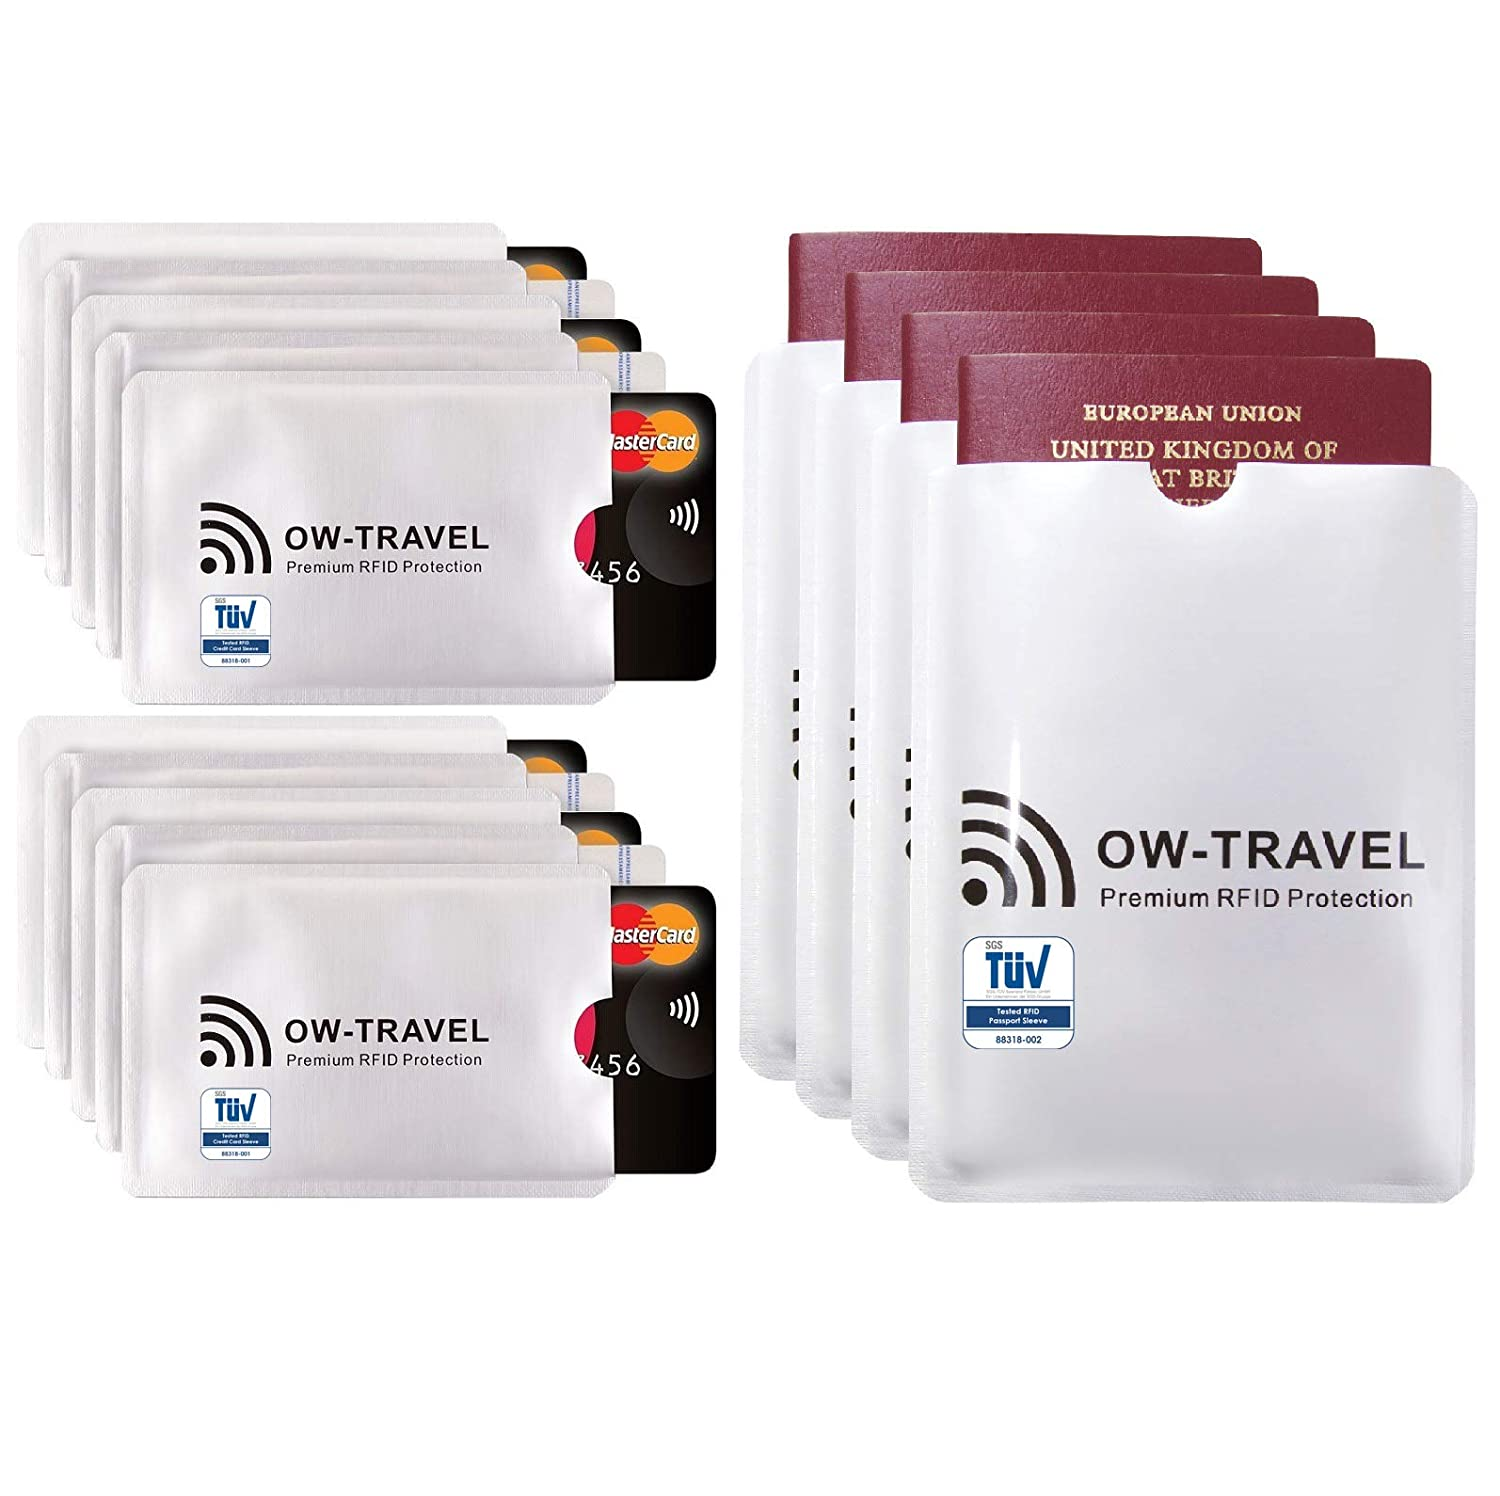 ✅TÜV Approved NFC RFID Card Protector Sleeves Passport  Card Blocker  Contactless Card Protection  Credit Card Holder RFID Blocking Card Sleeve   Card